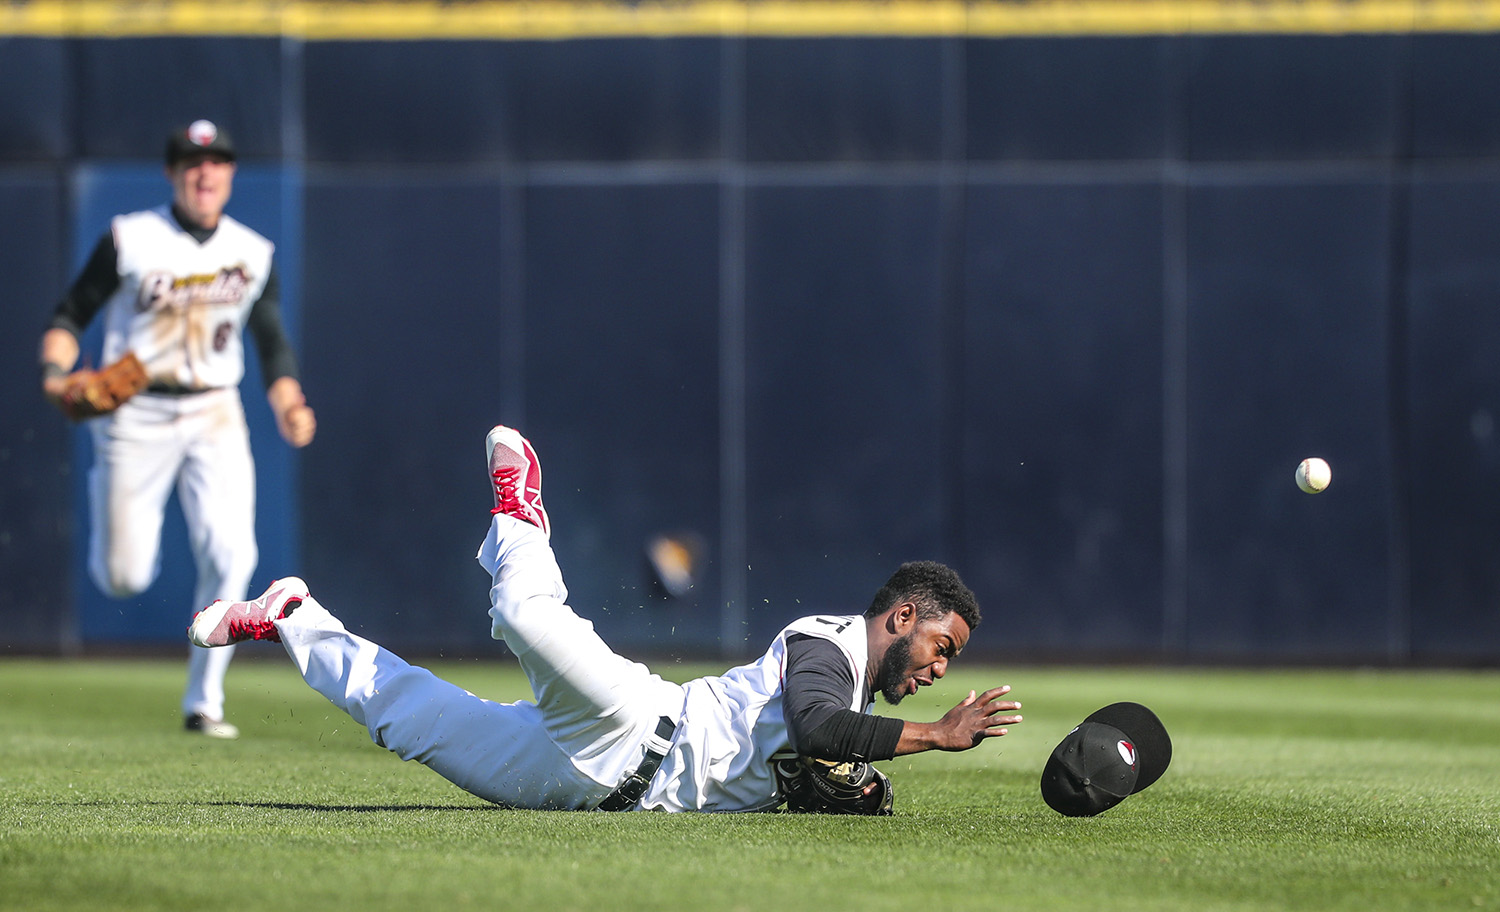 Quad-Cities River Bandits second baseman Marcos Almonte (1) loses his hold of a caught fly ball after diving and landing in the outfield during their game at Modern Woodmen Park in Davenport, Iowa, on Sunday, April 29, 2018.